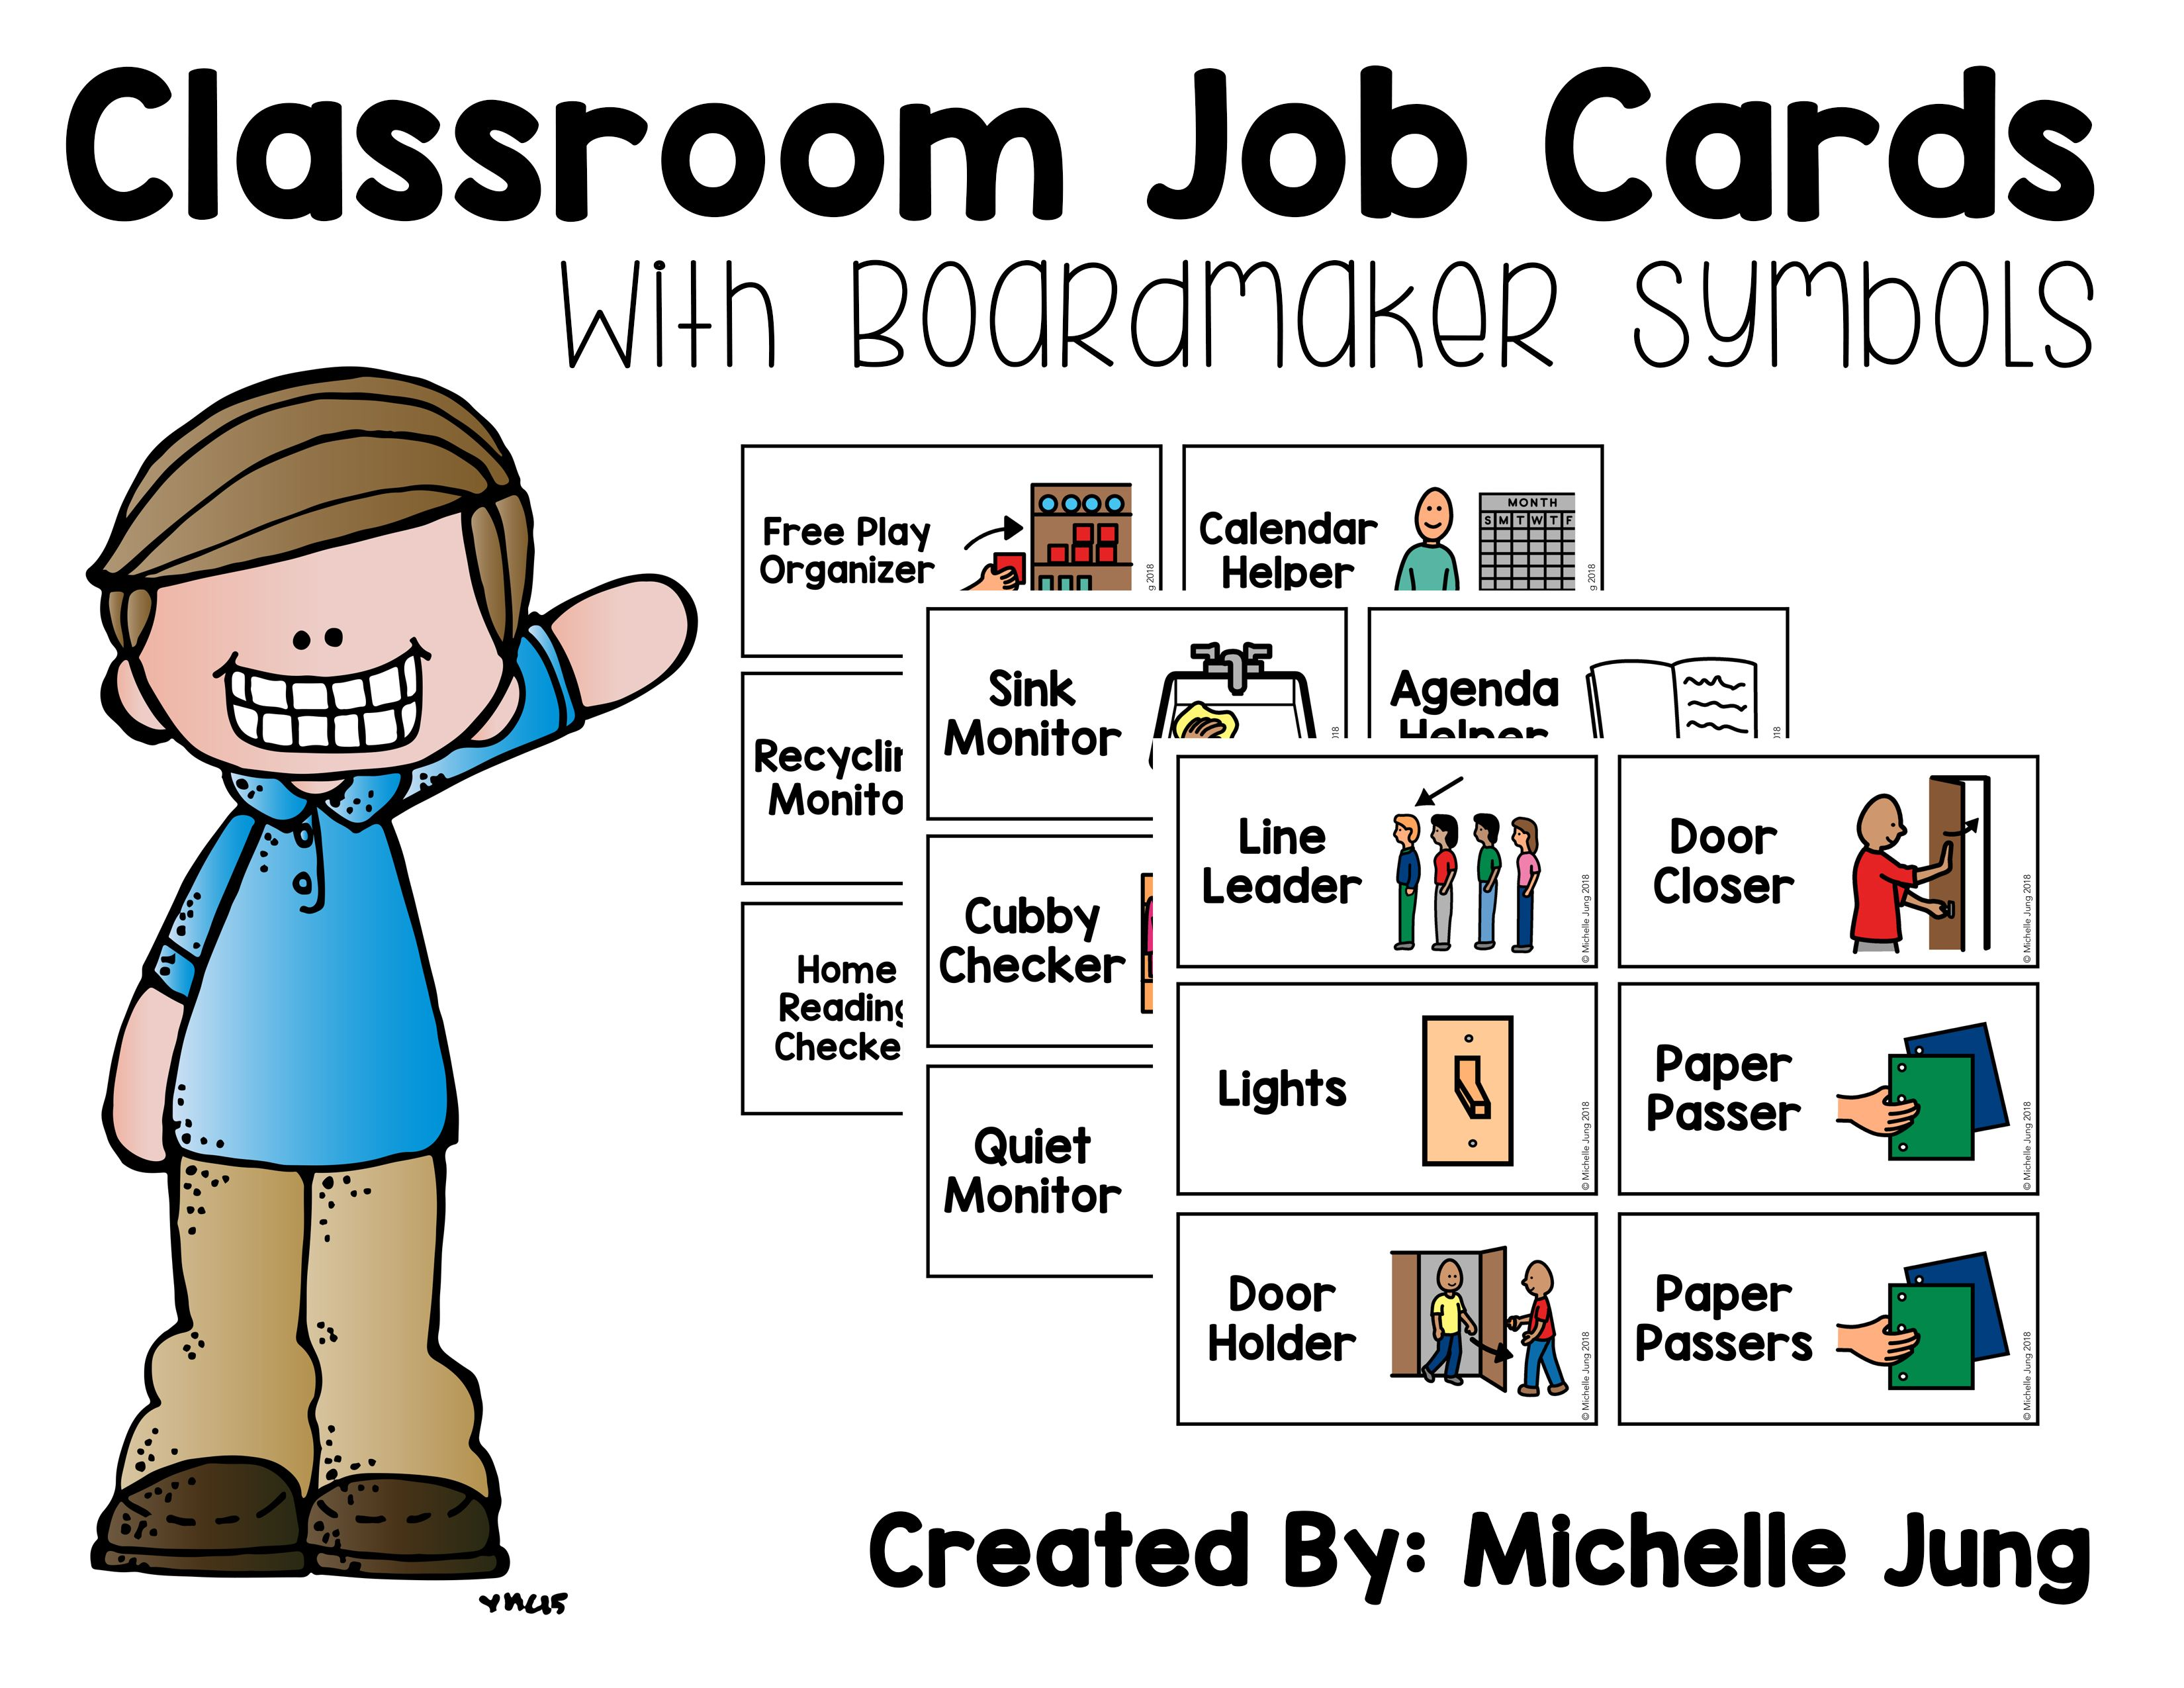 Classroom Job Cards Boardmaker Symbols With Images